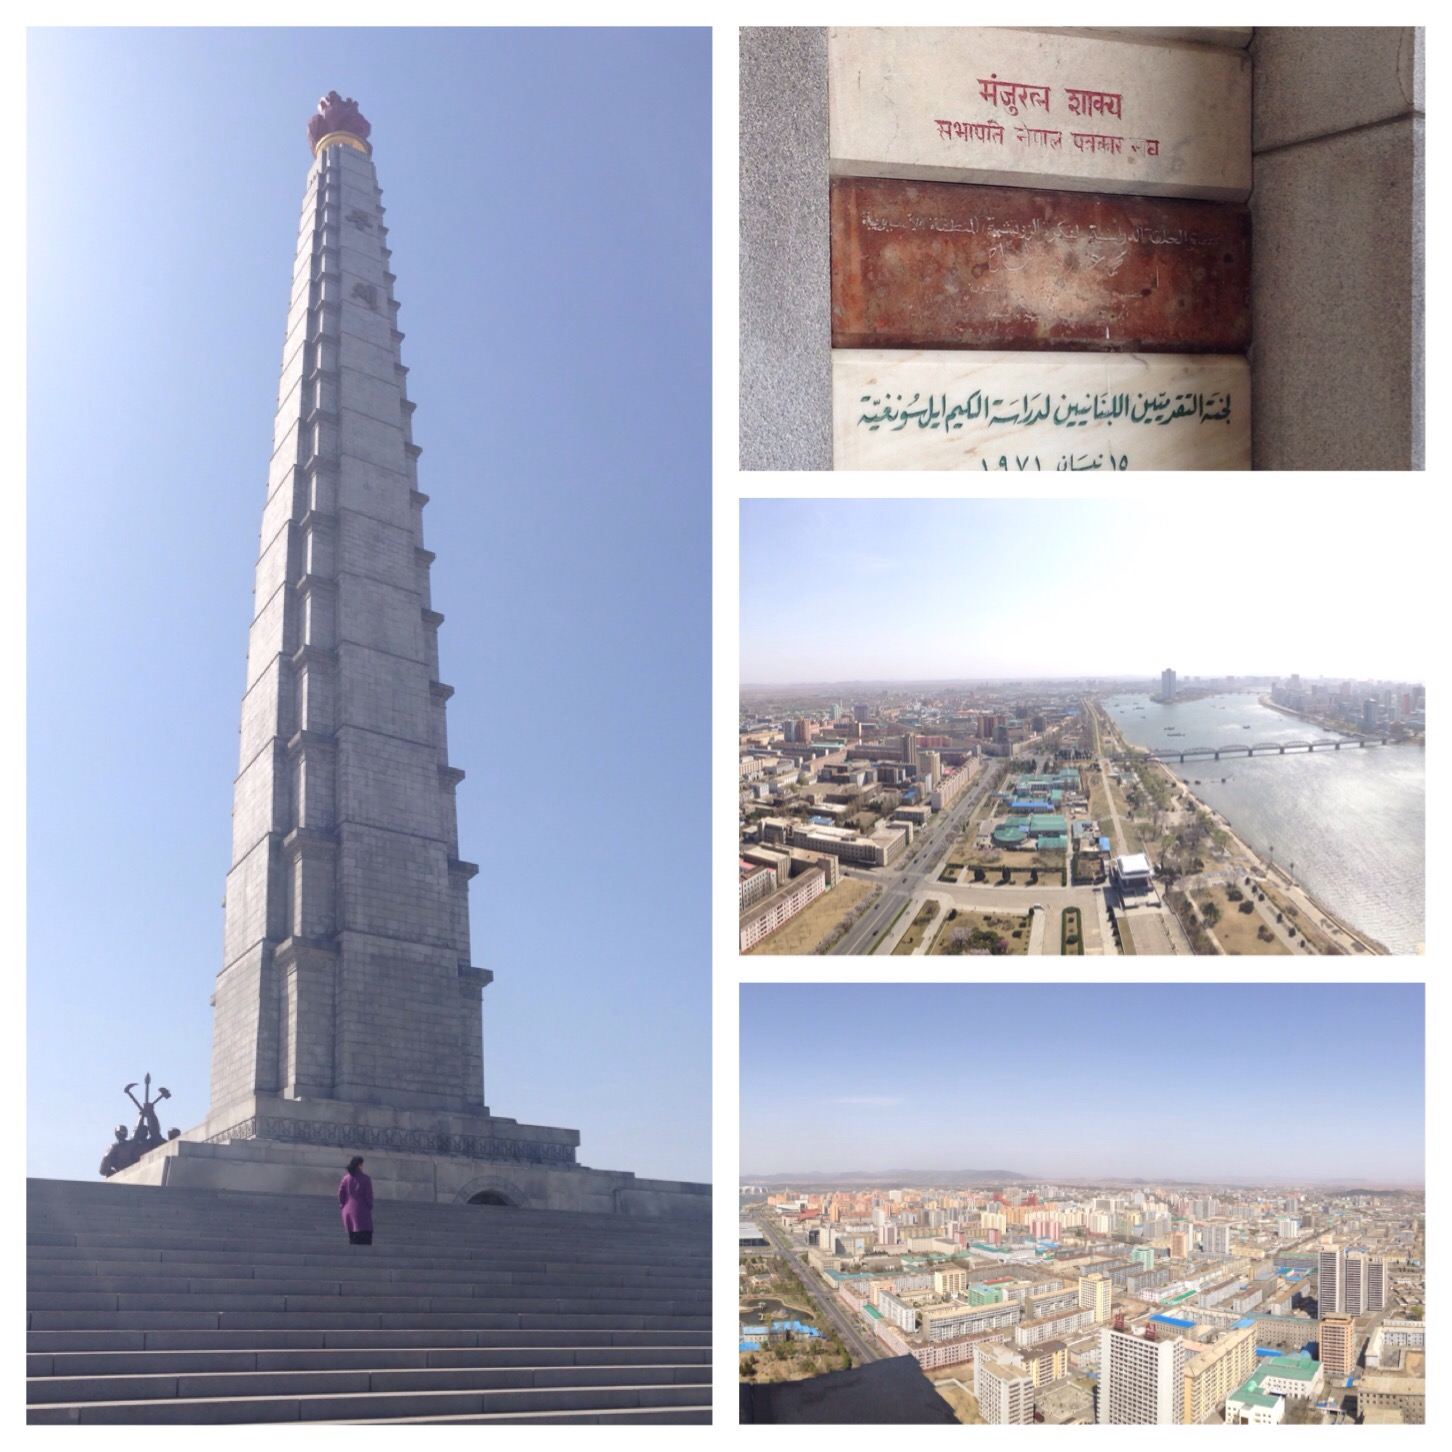 Juche Tower and the View of Pyongyang